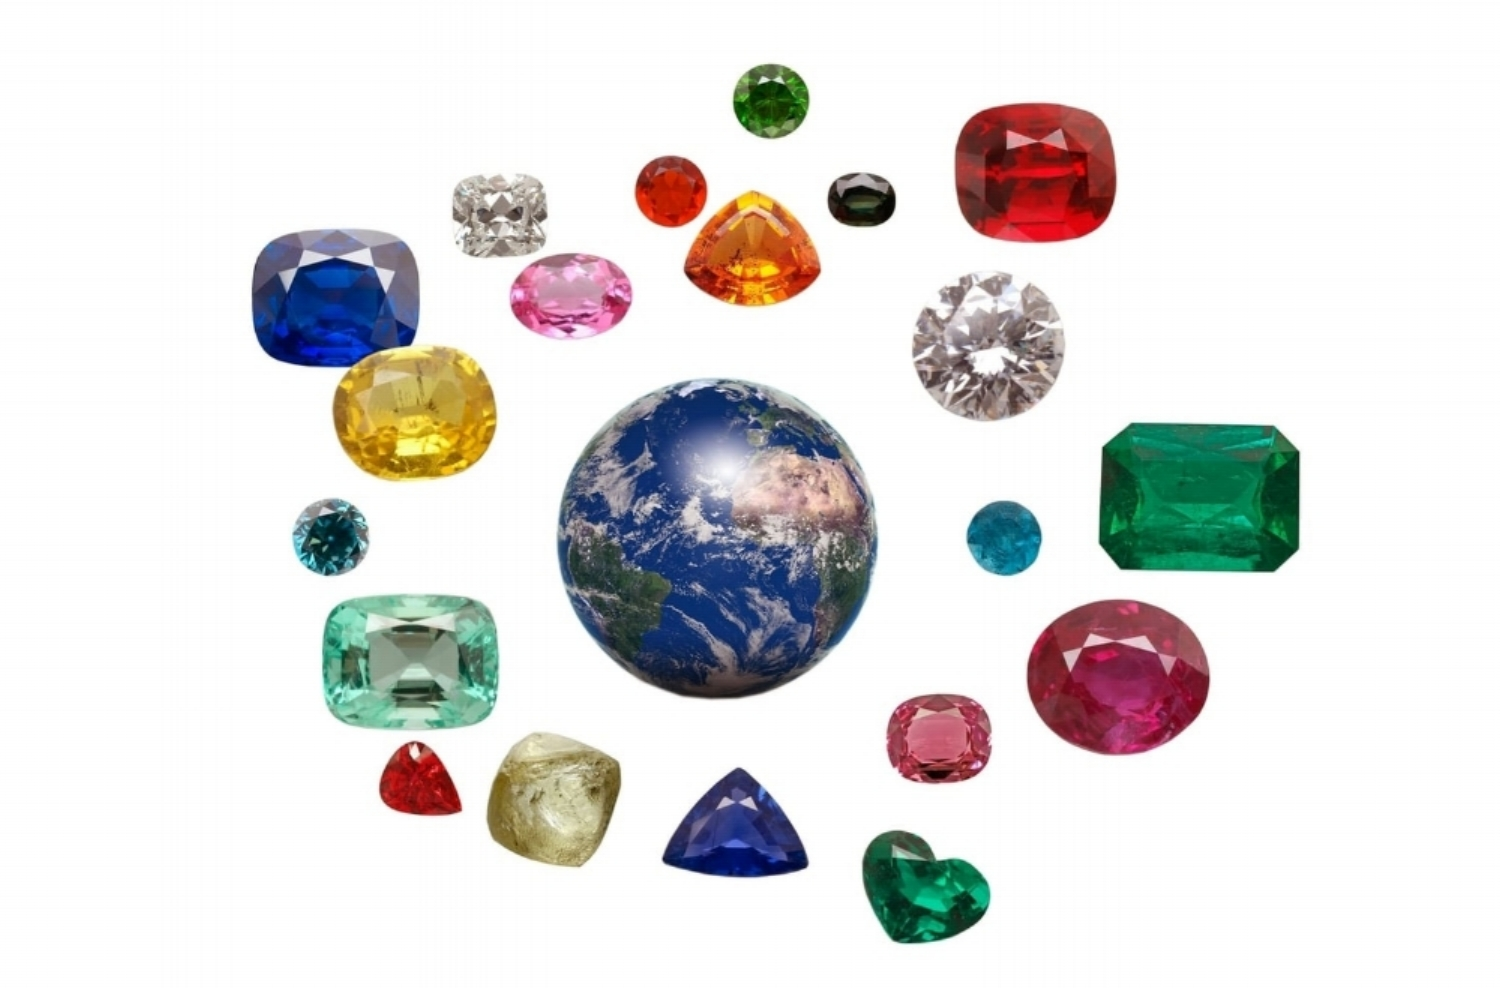 holistic information gem rock and meaning uses auctions learn gemstone sapphire gemstones